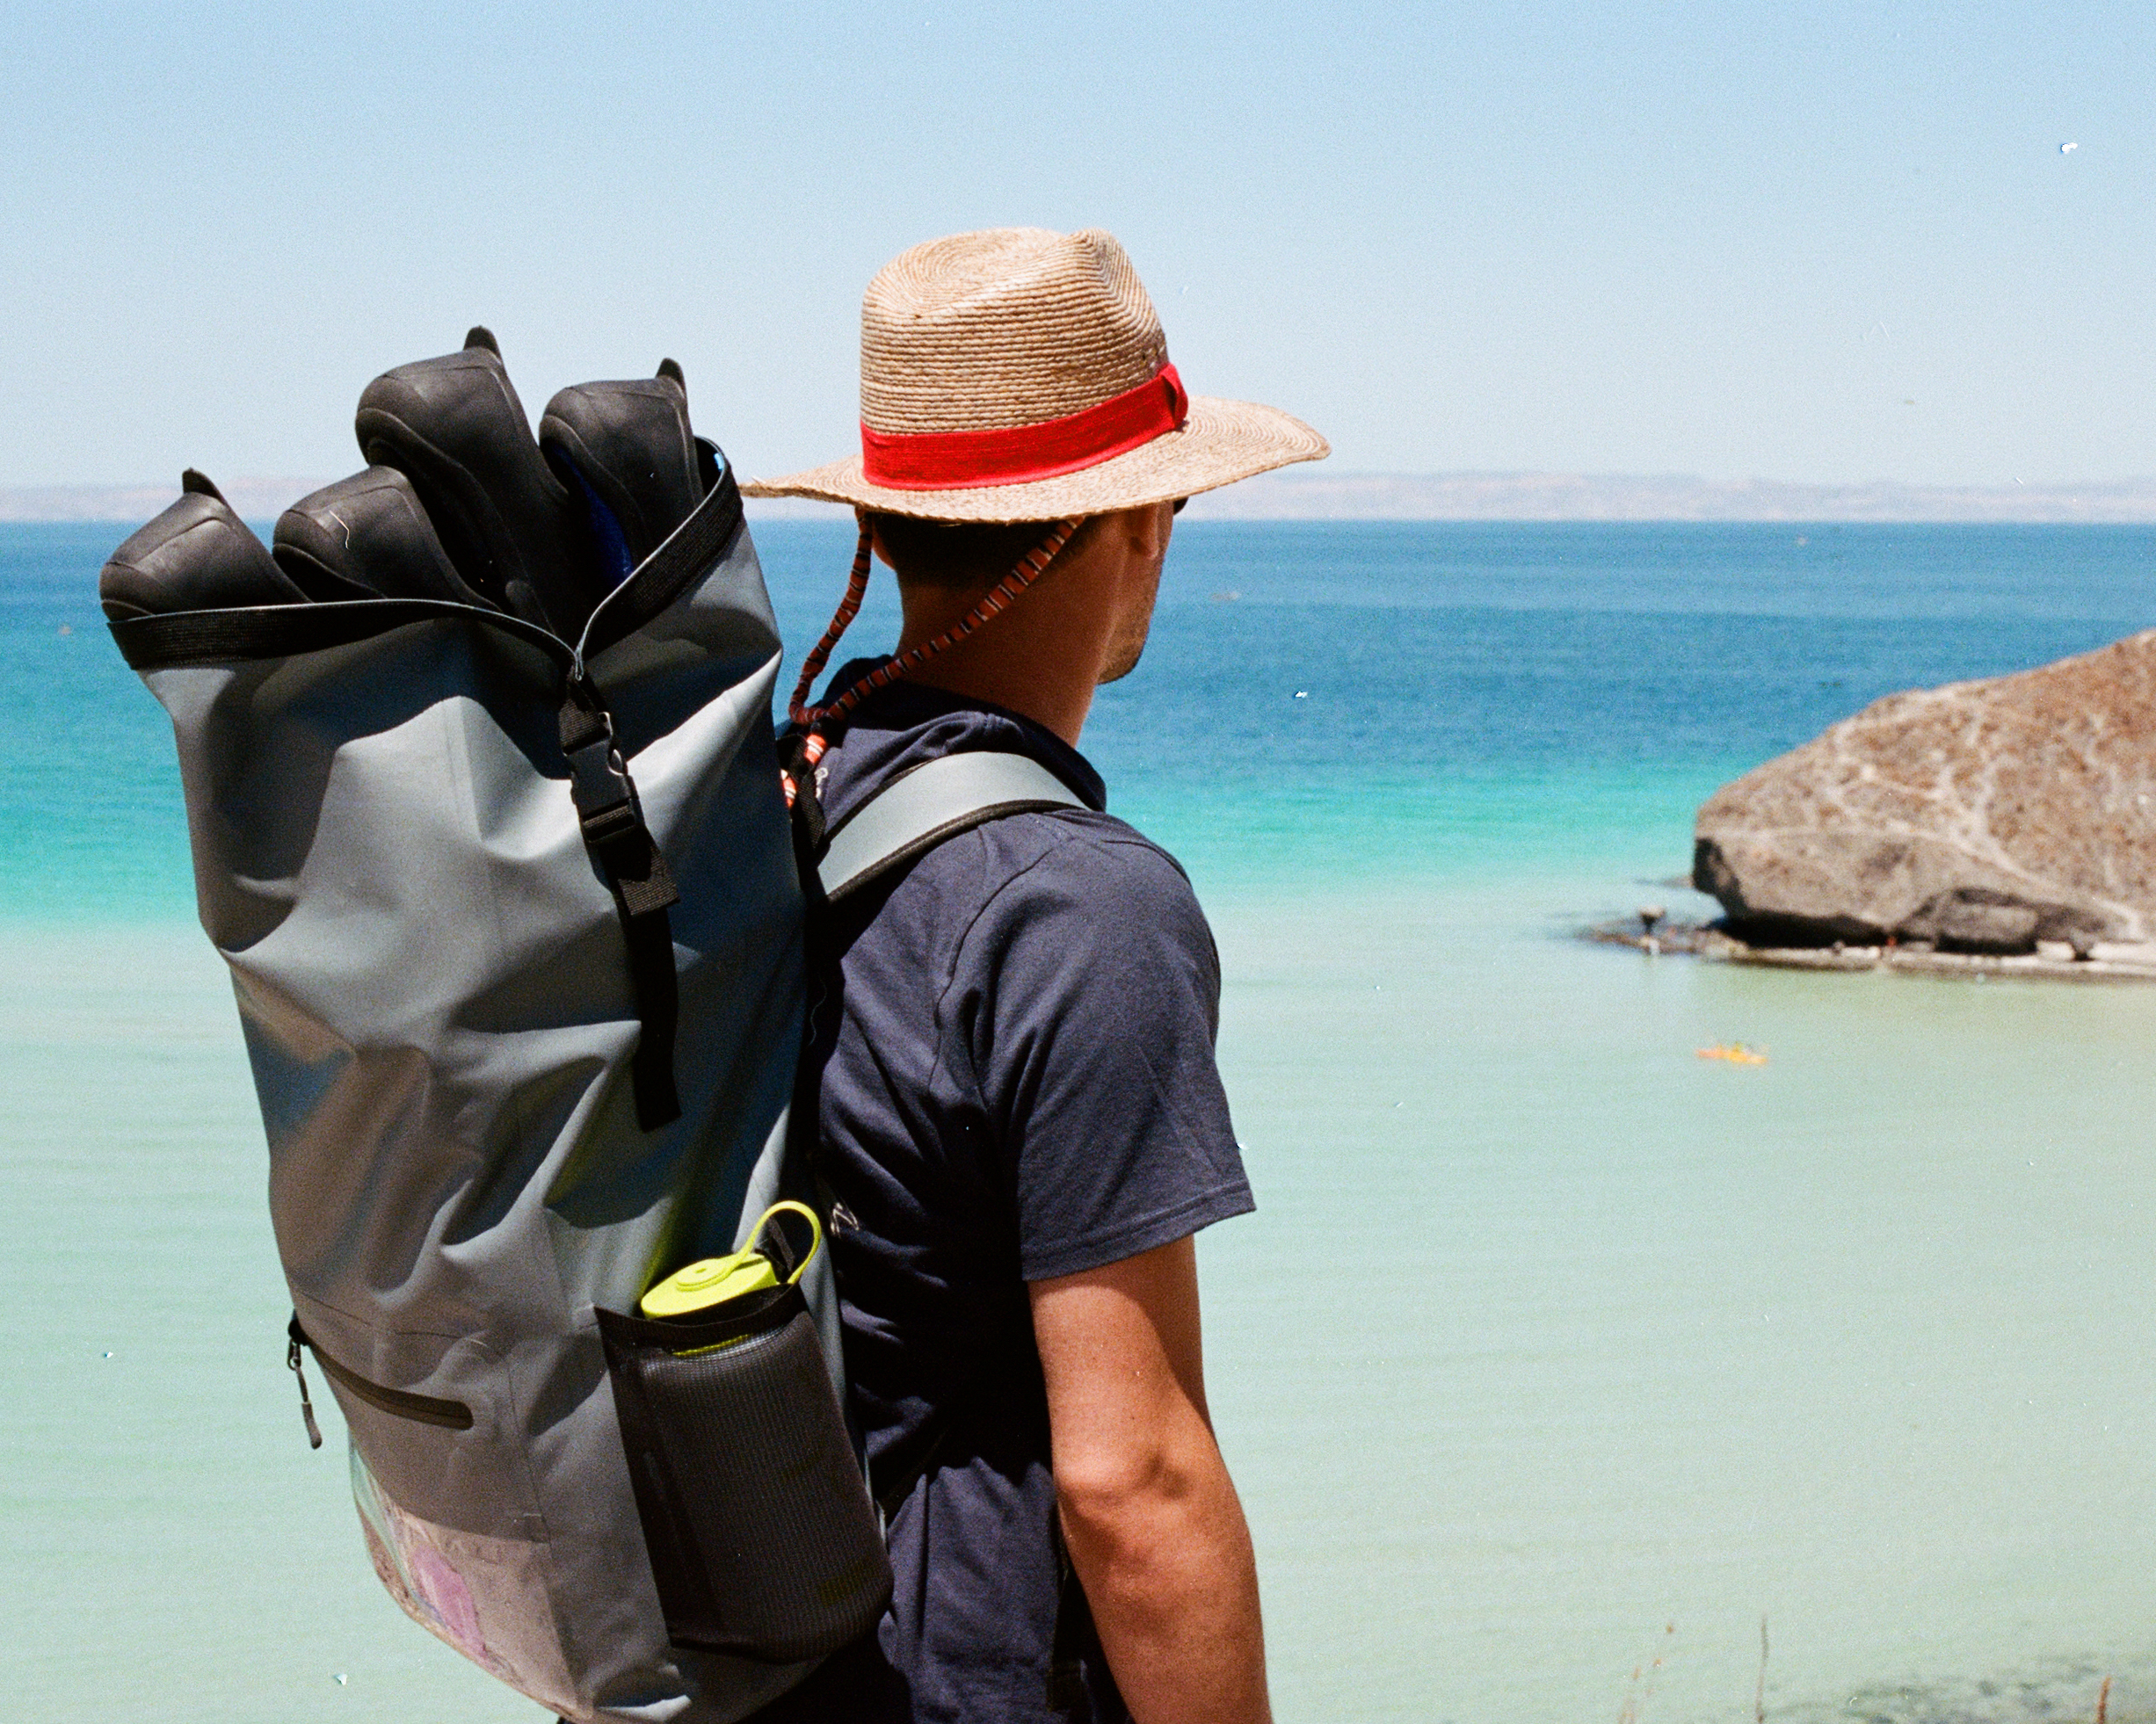 Photograph of Nick Messina in Baja Mexico by photographer Jon Moore, Creative Director at The Beans and Rice